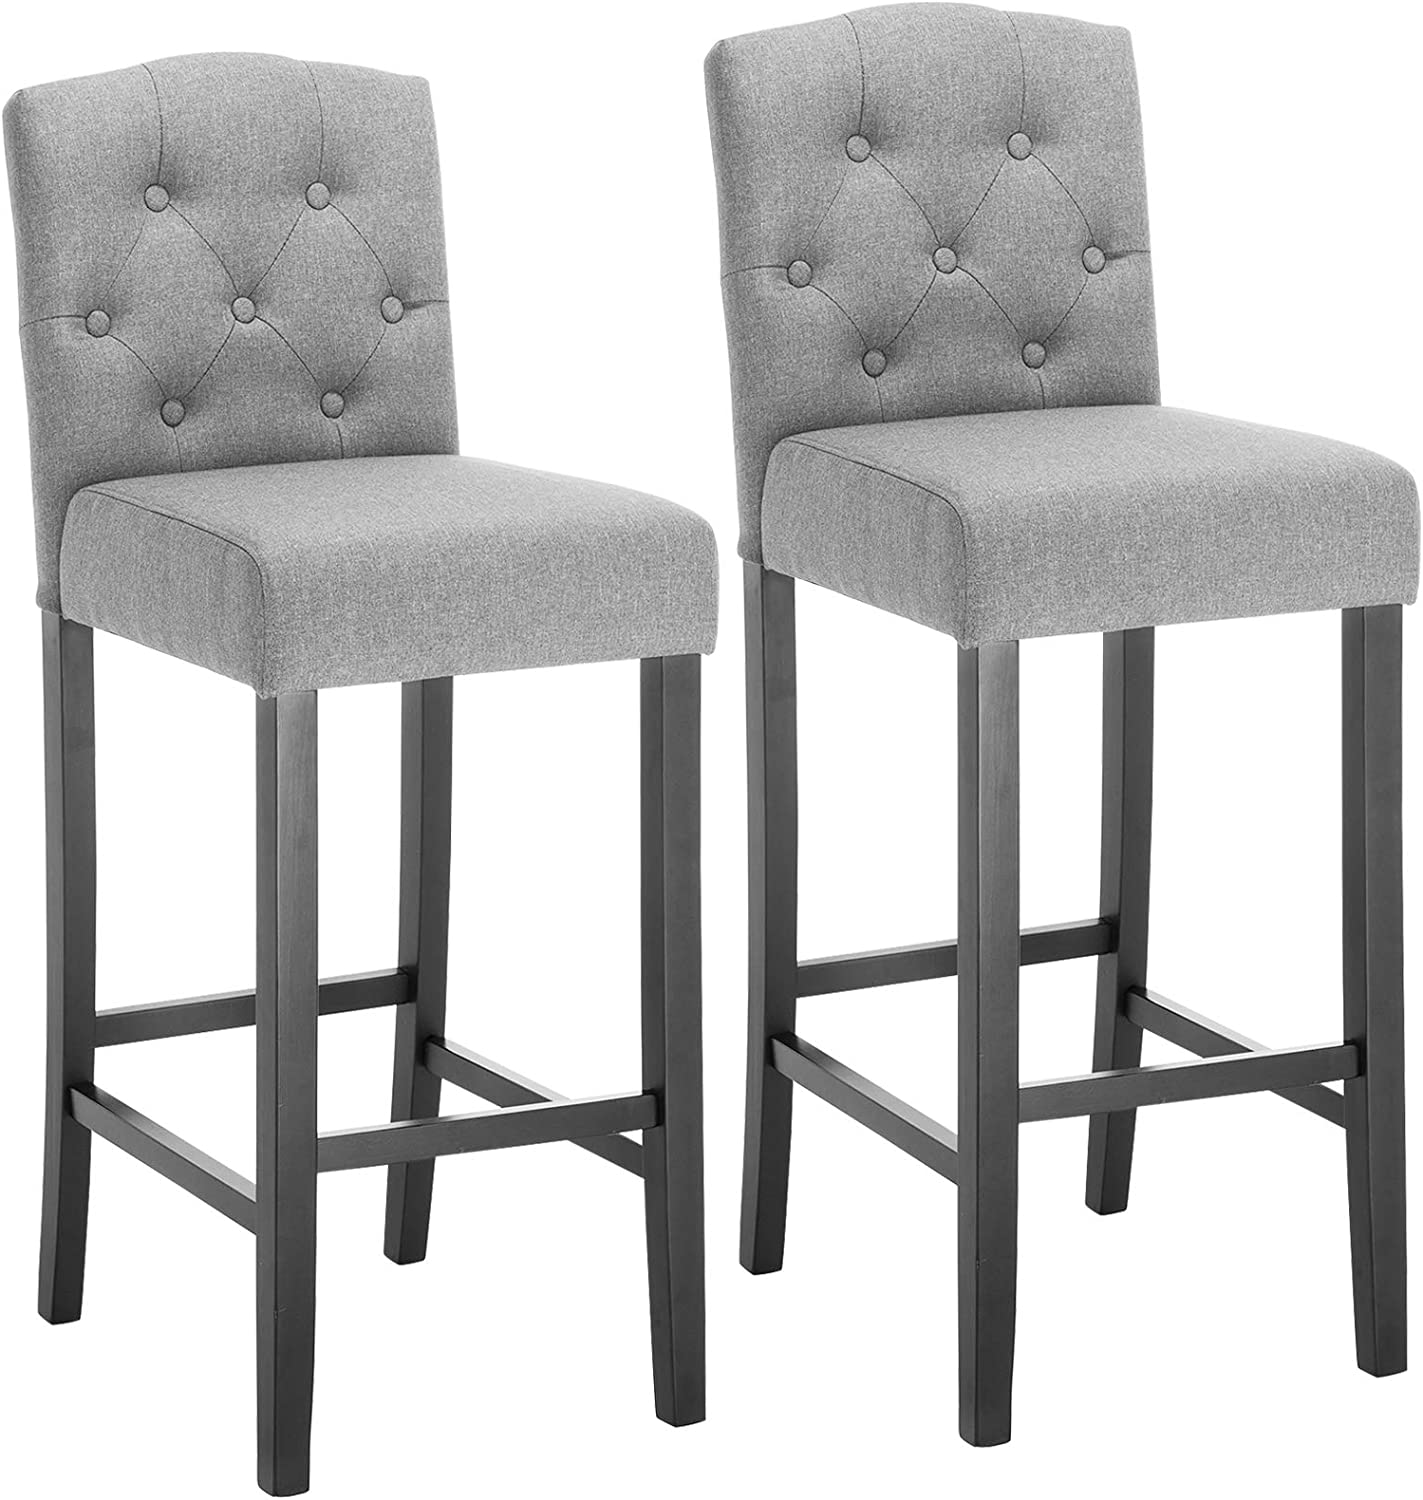 WOLTU Breakfast Kitchen Counter Chairs Bar Stools Set of 9 Bar Chairs Wood  Legs Barstools Light Grey High Stools